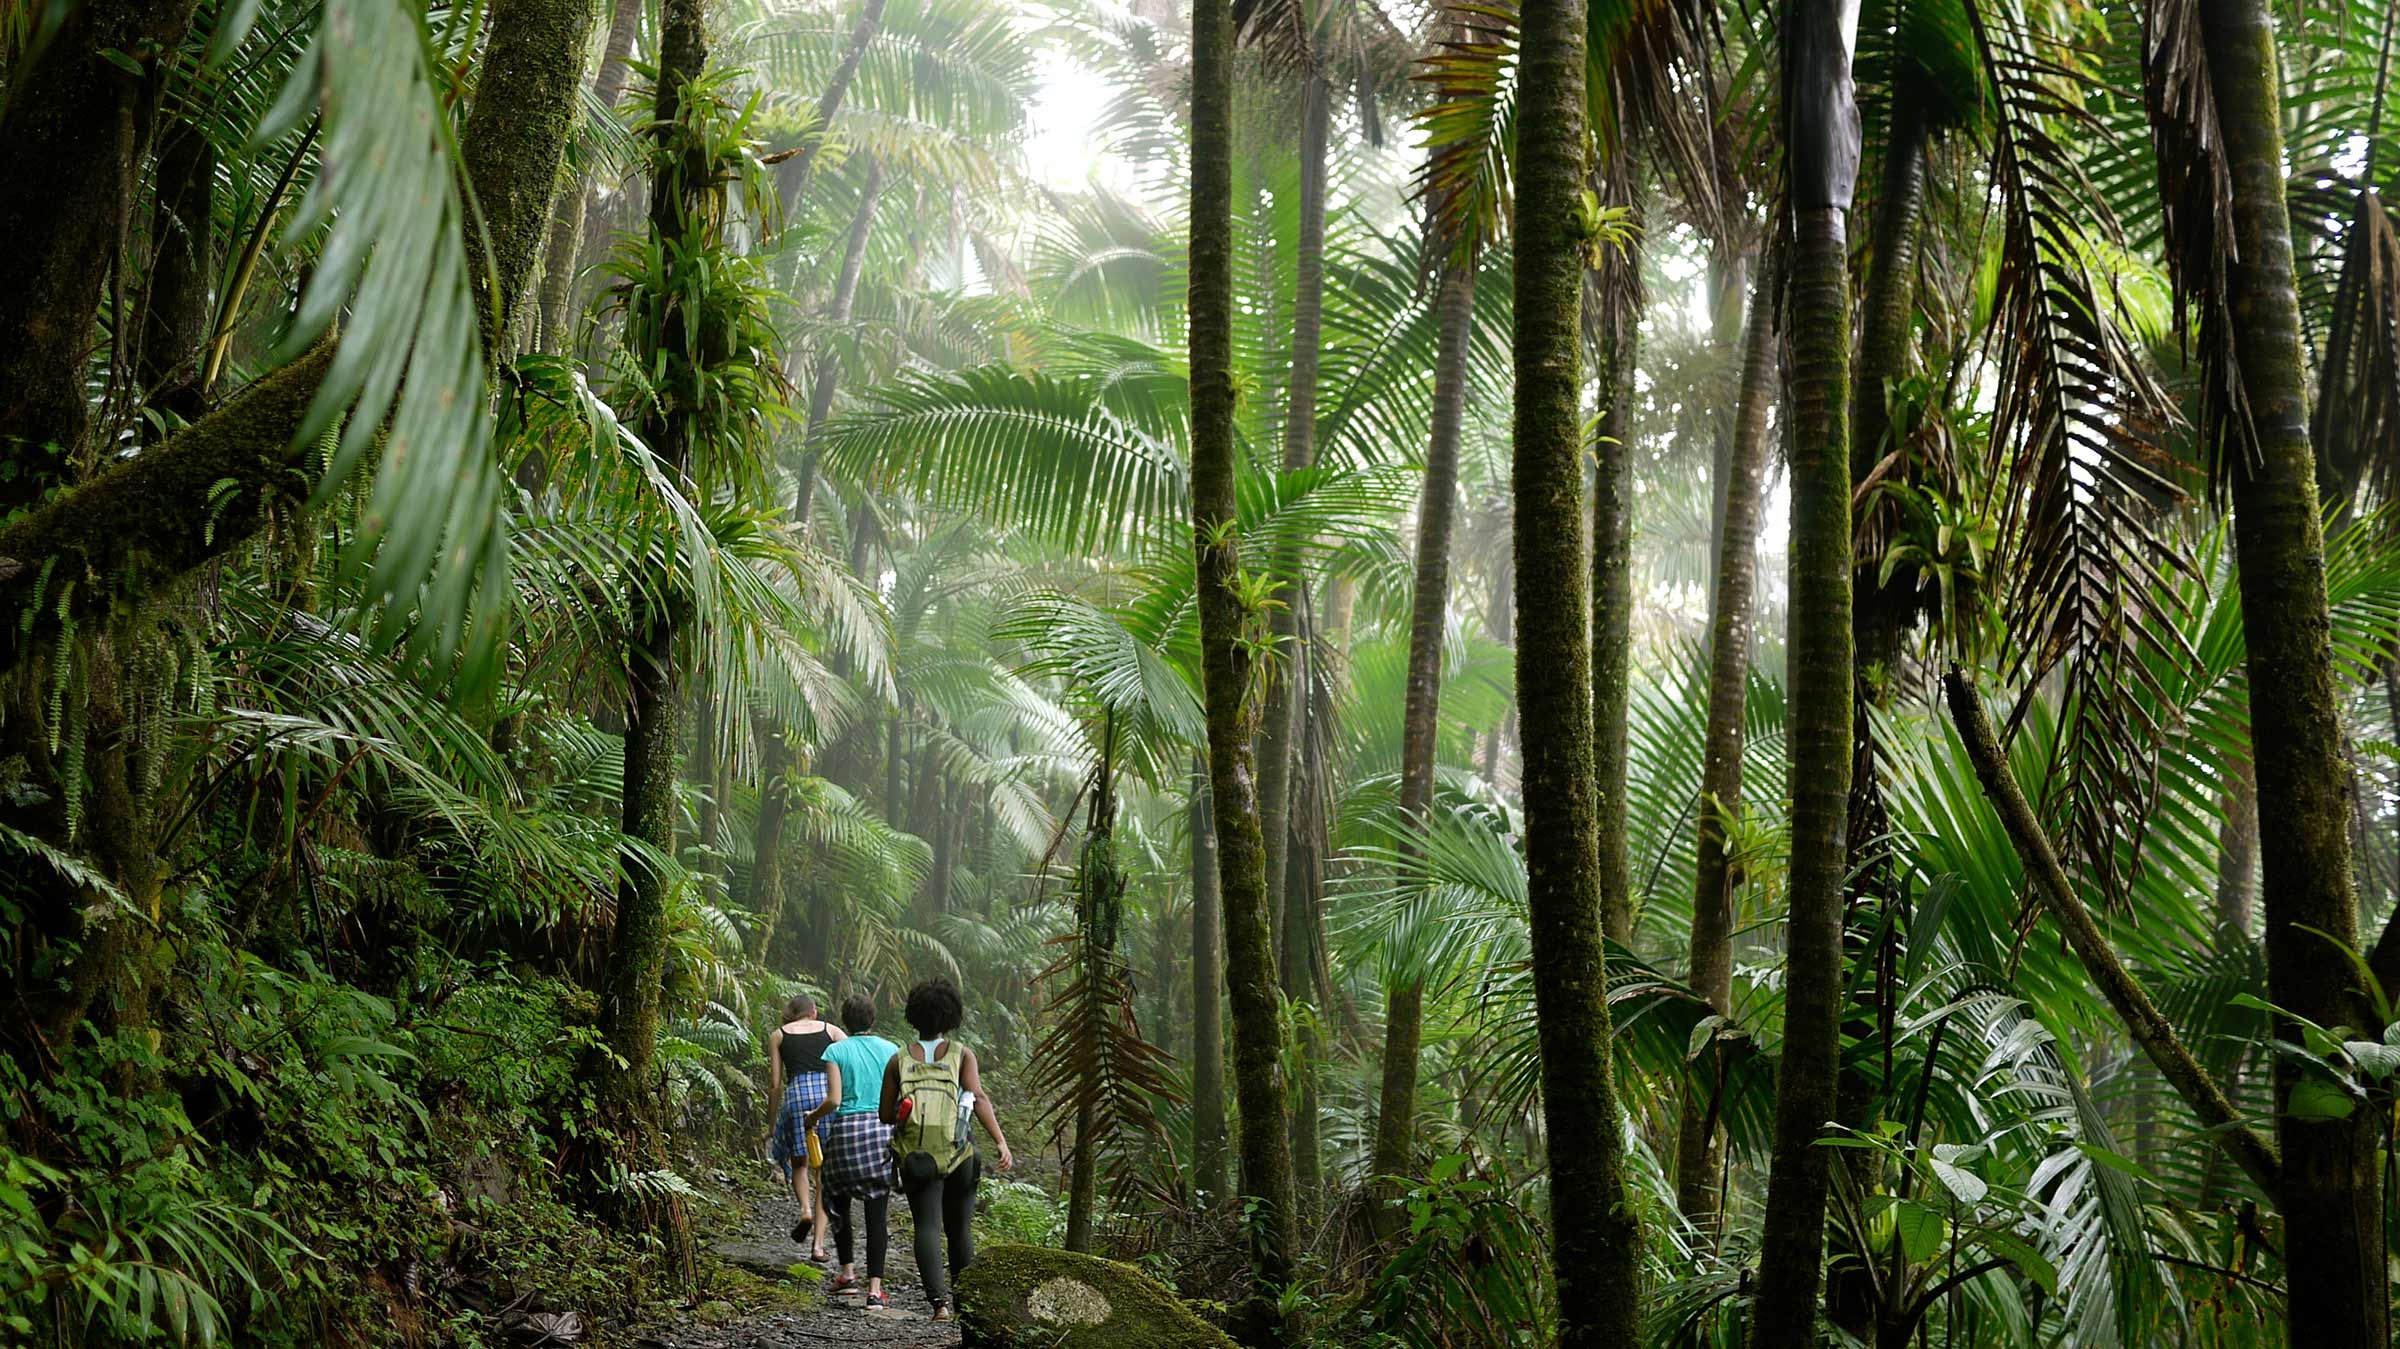 UC San Diego hiking trail in Puerto Rico forest